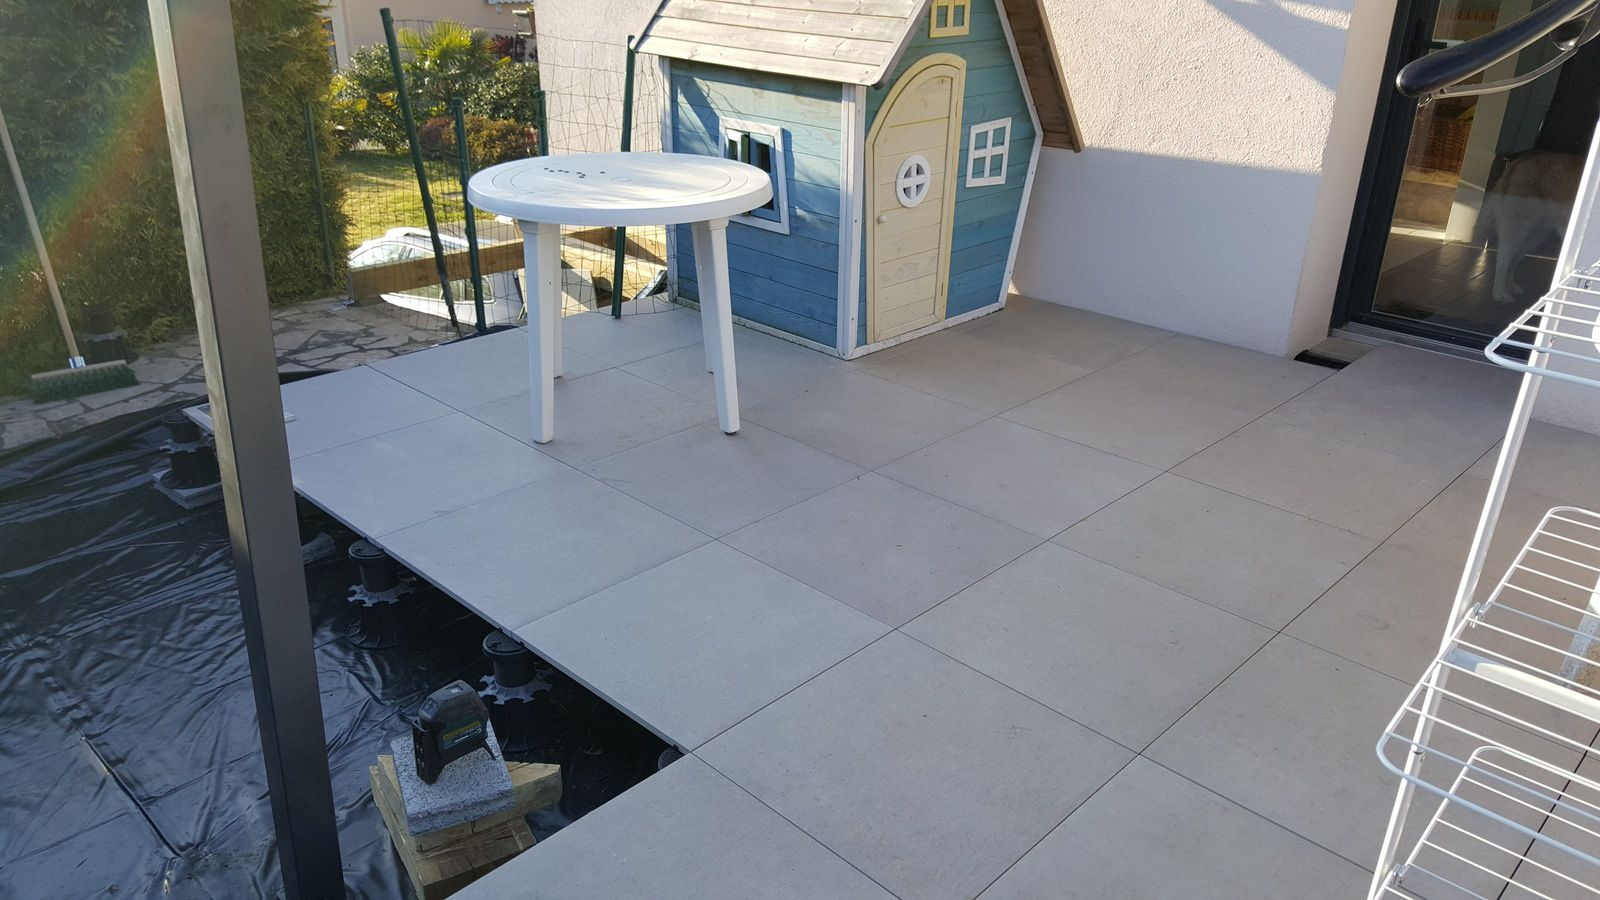 Carrelage Terrasse Oikos Photo De Terrasse En Carrelage Perfect Retirer Les Profils